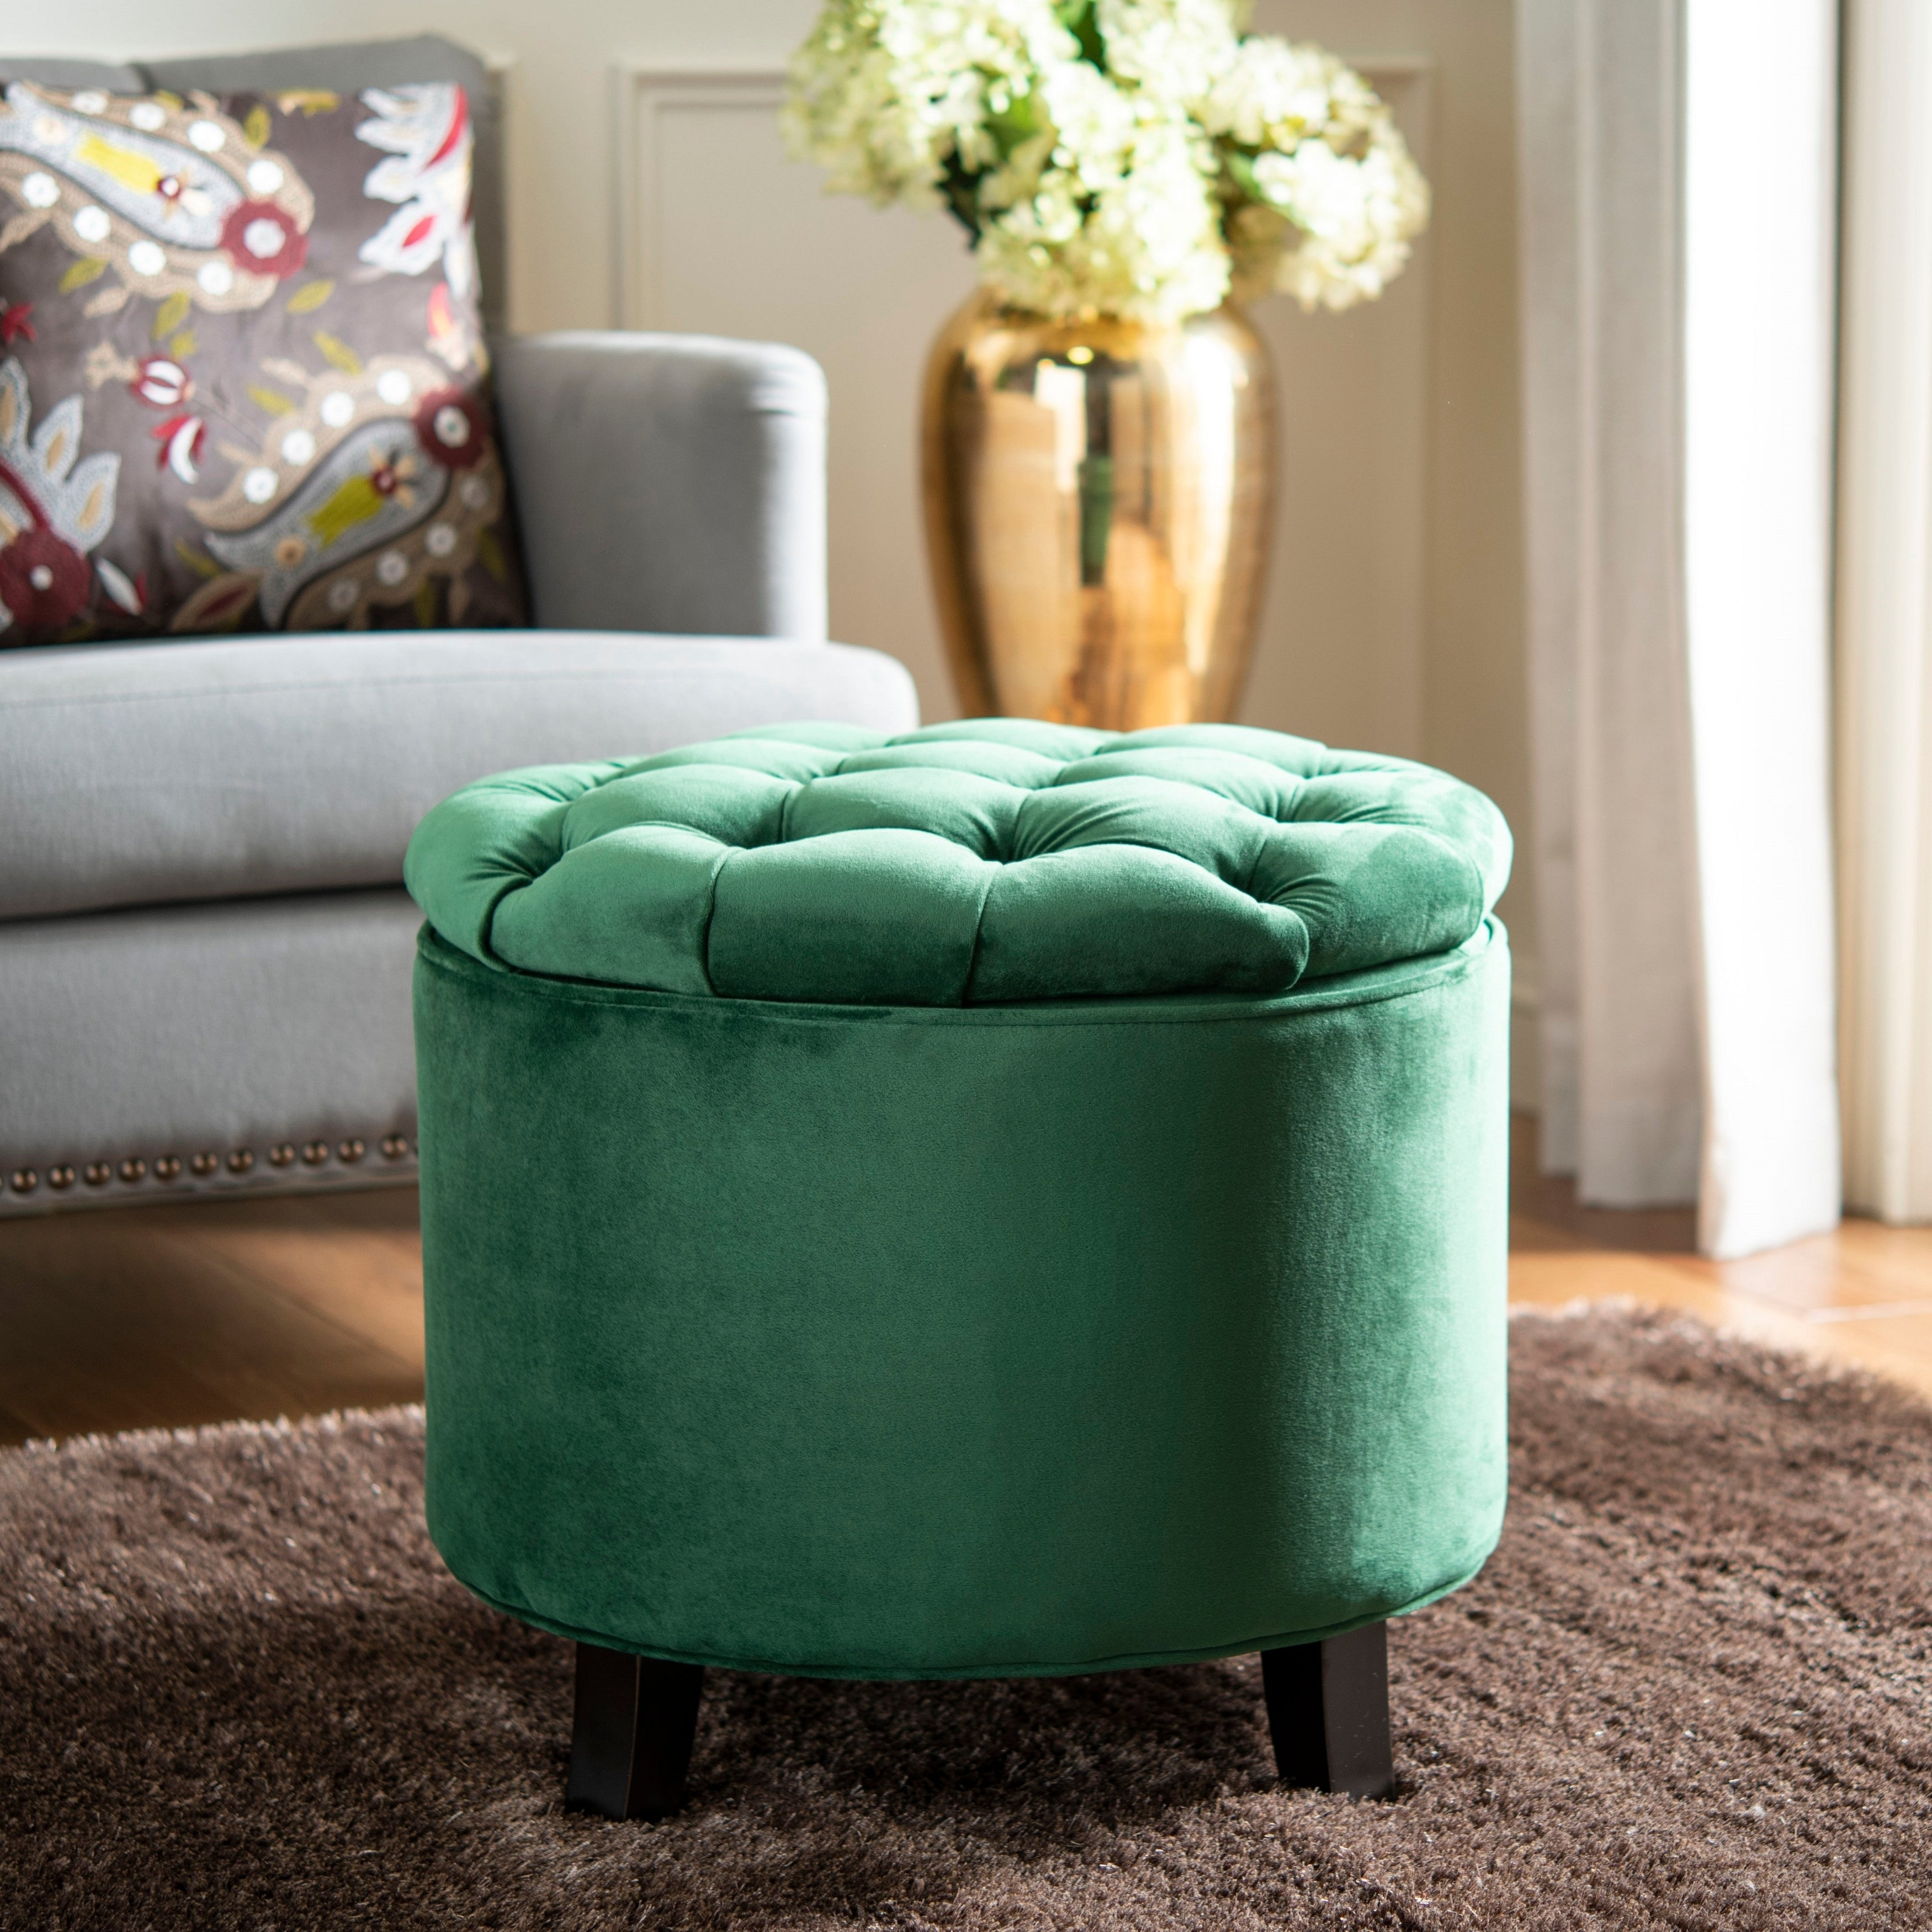 Pleasing Safavieh Amelia Emerald Tufted Storage Ottoman Gmtry Best Dining Table And Chair Ideas Images Gmtryco